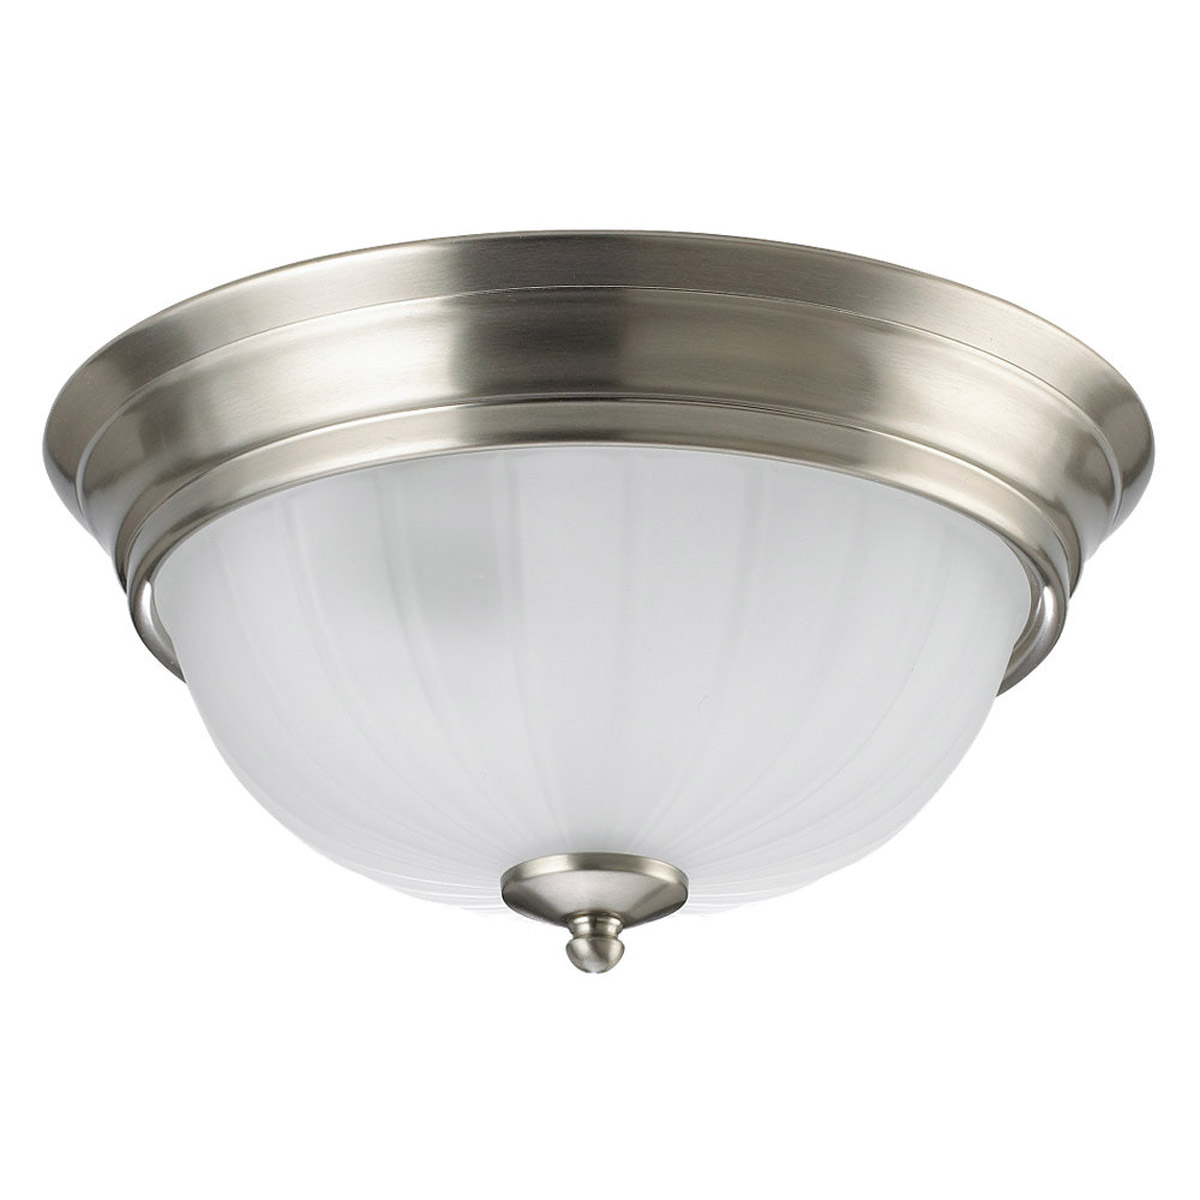 Sea Gull Lighting Floyd 3 Light Flush Mount in Brushed Nickel 79506BLE-962